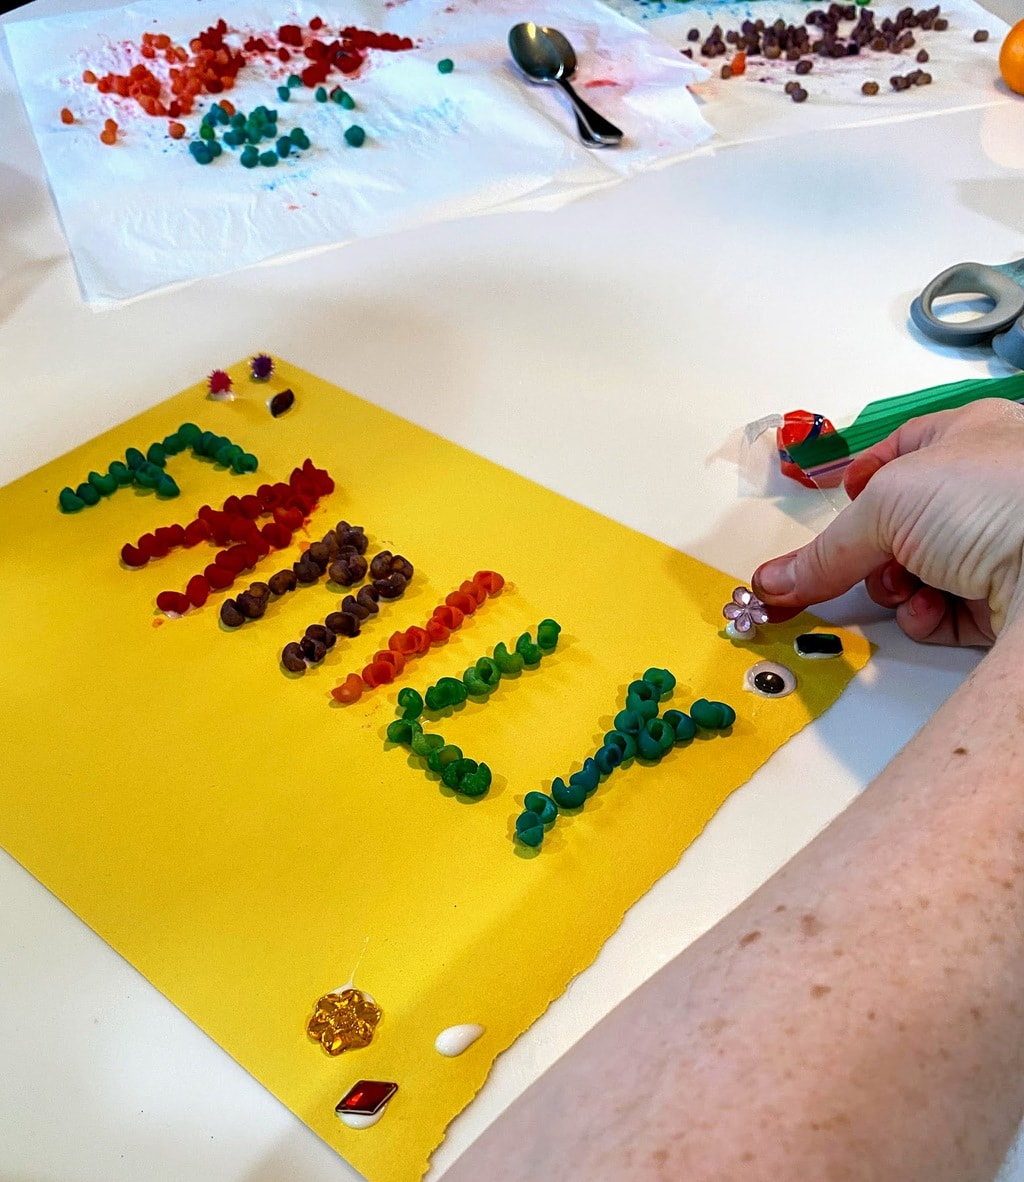 Girls gluing jewels to paper